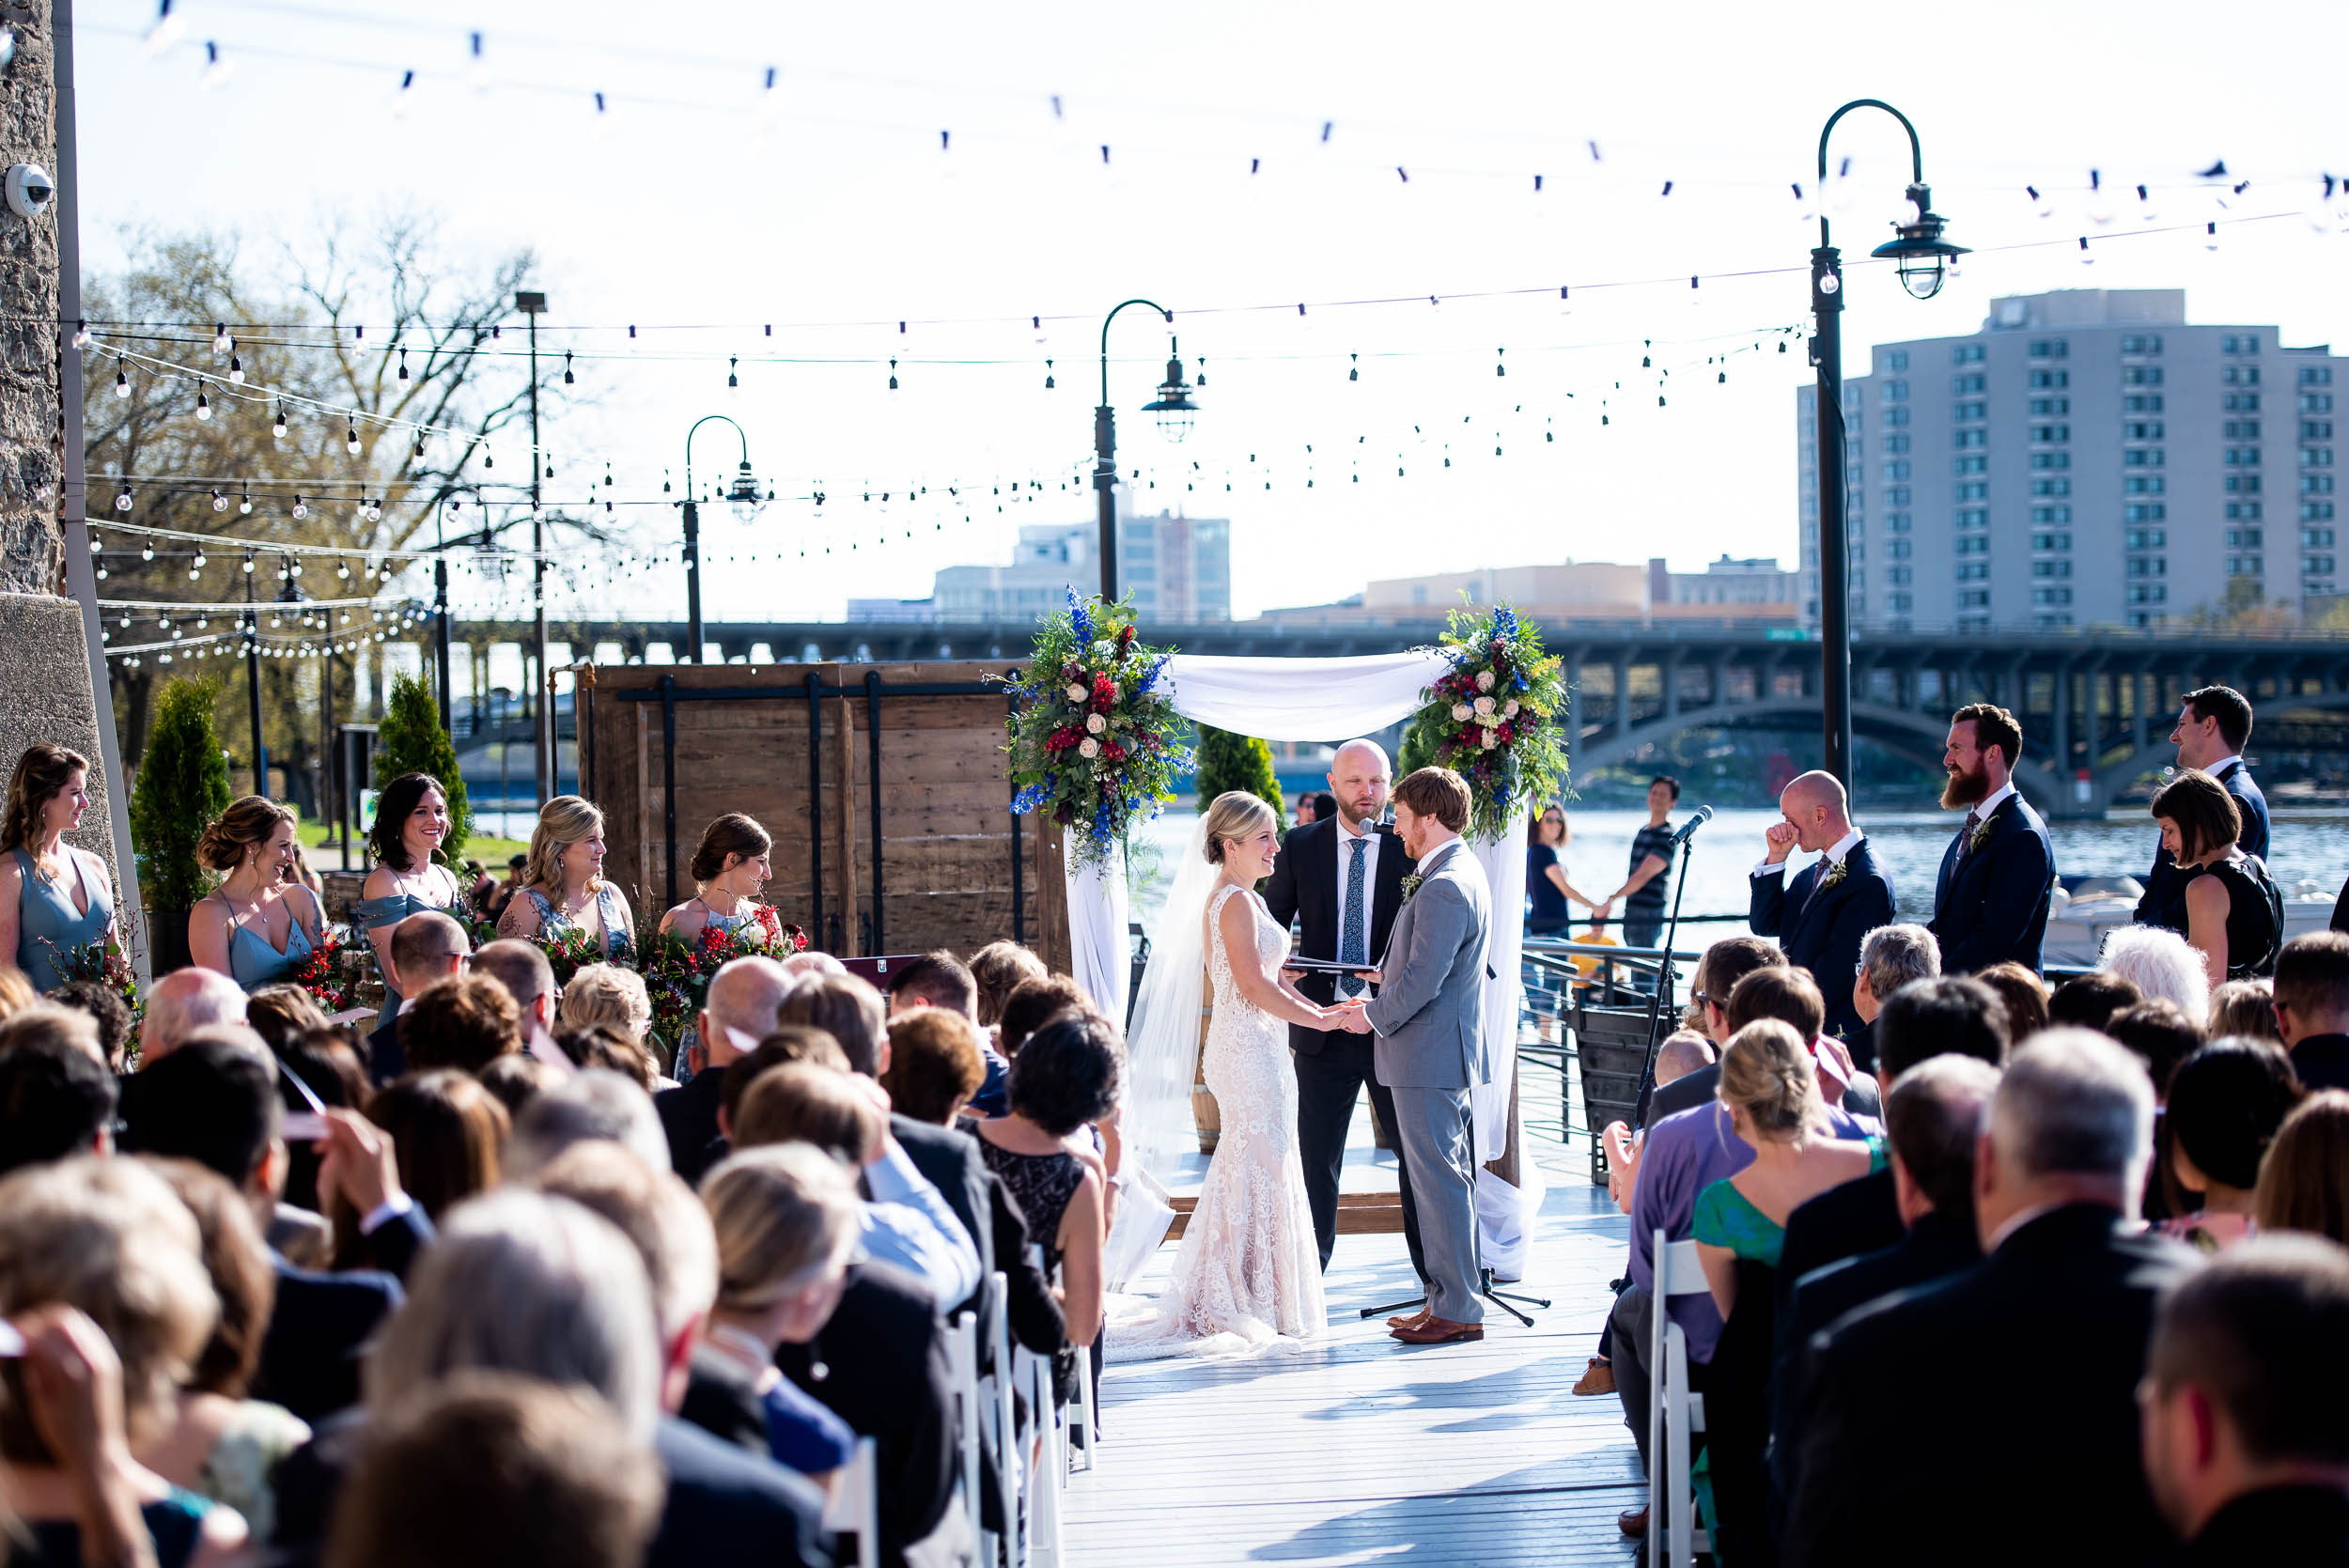 Wedding ceremony inspiration: Modern industrial Chicago wedding inside Prairie Street Brewhouse captured by J. Brown Photography. Find more wedding ideas at jbrownphotography.com!